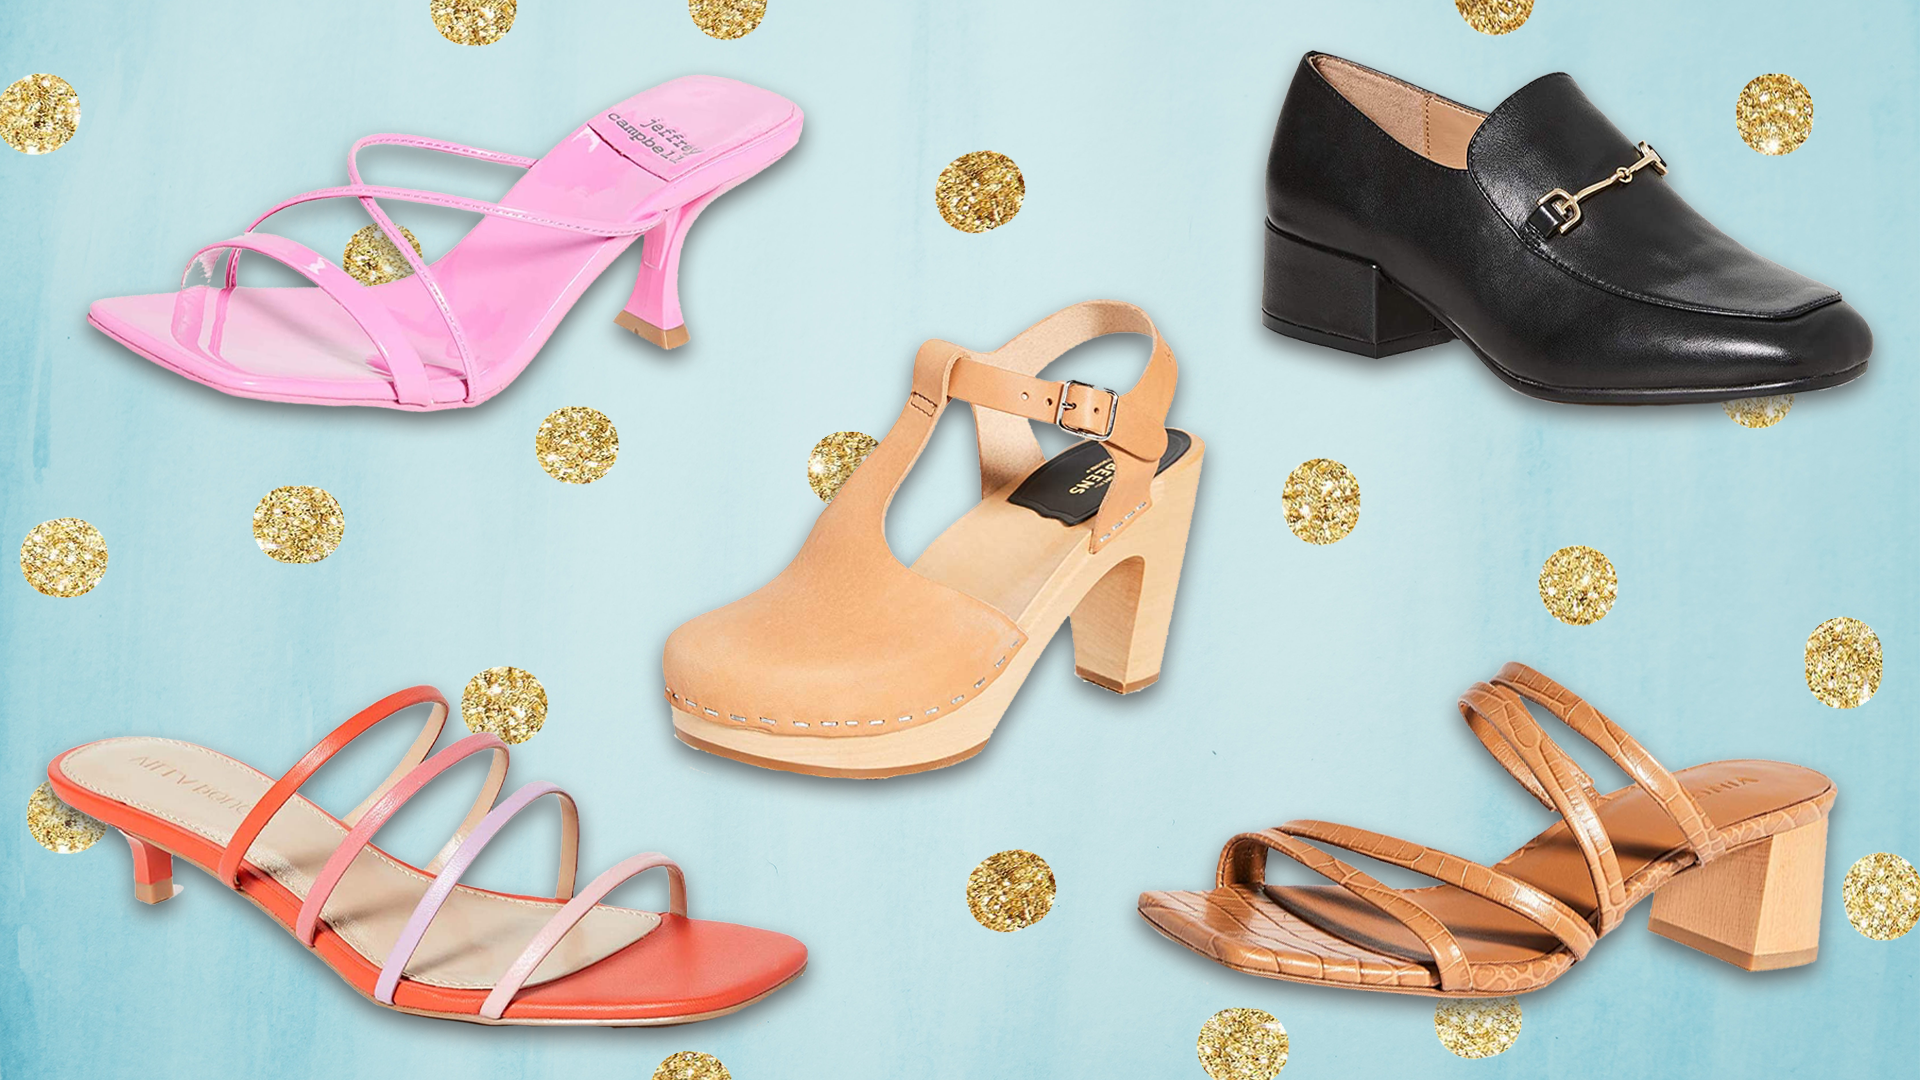 The Summer 2020 Heel Trends Will Take Your Warm Weather Looks To New Heights